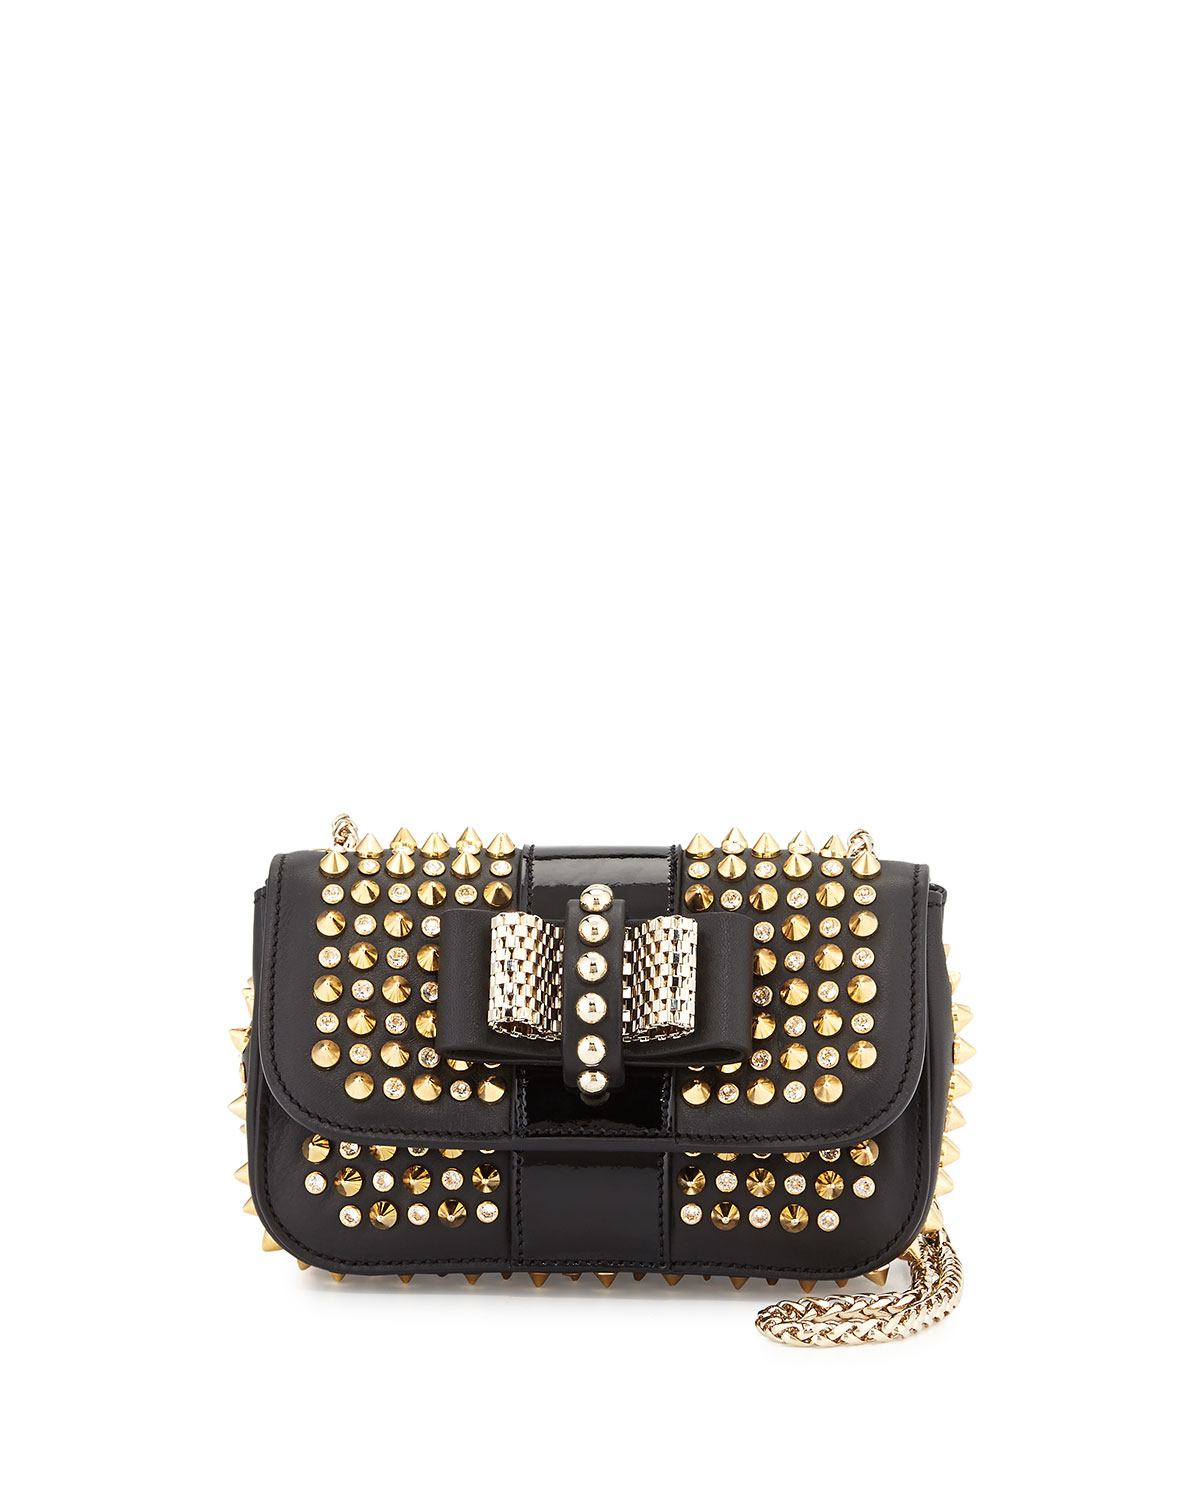 c45c331f74 Christian Louboutin Sweet Charity Spiked Crossbody Bag